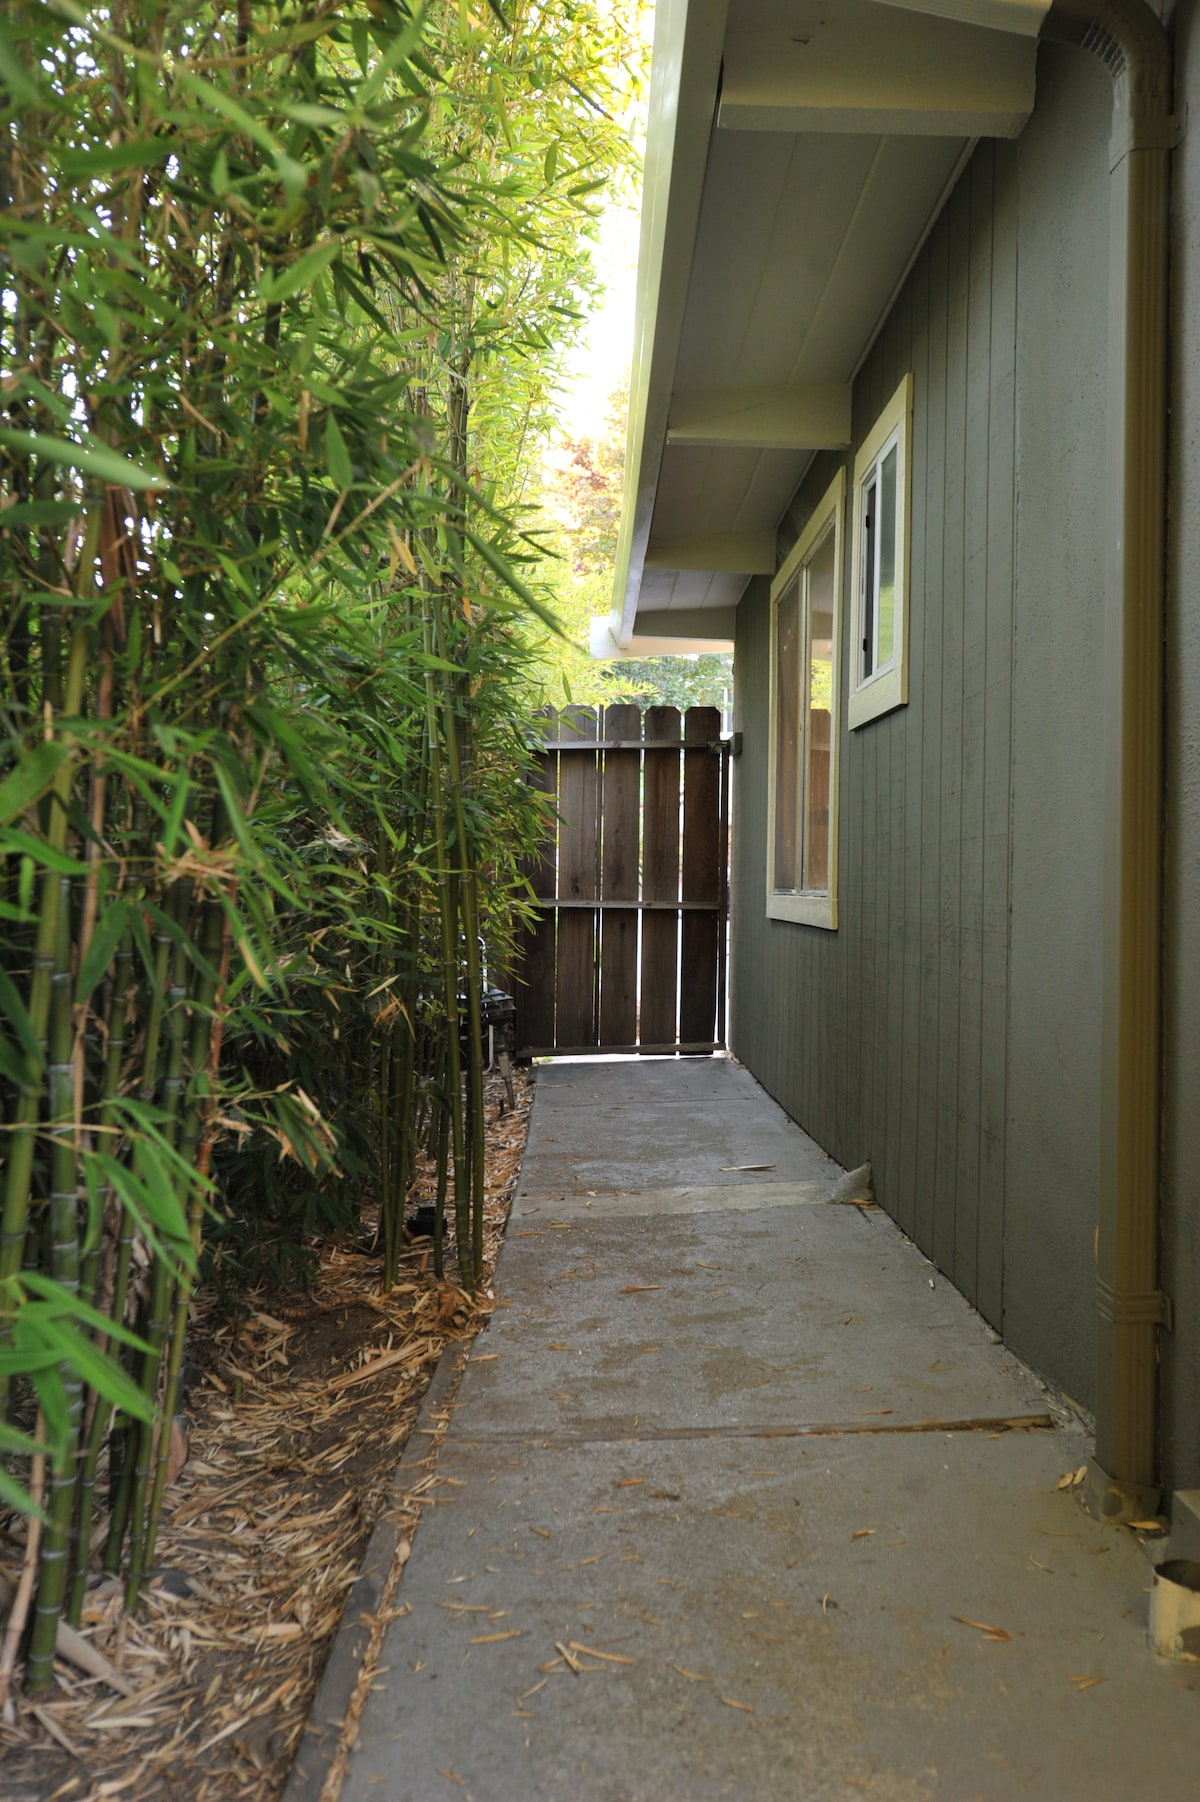 Private lighted entrance to your room through the bamboo garden.